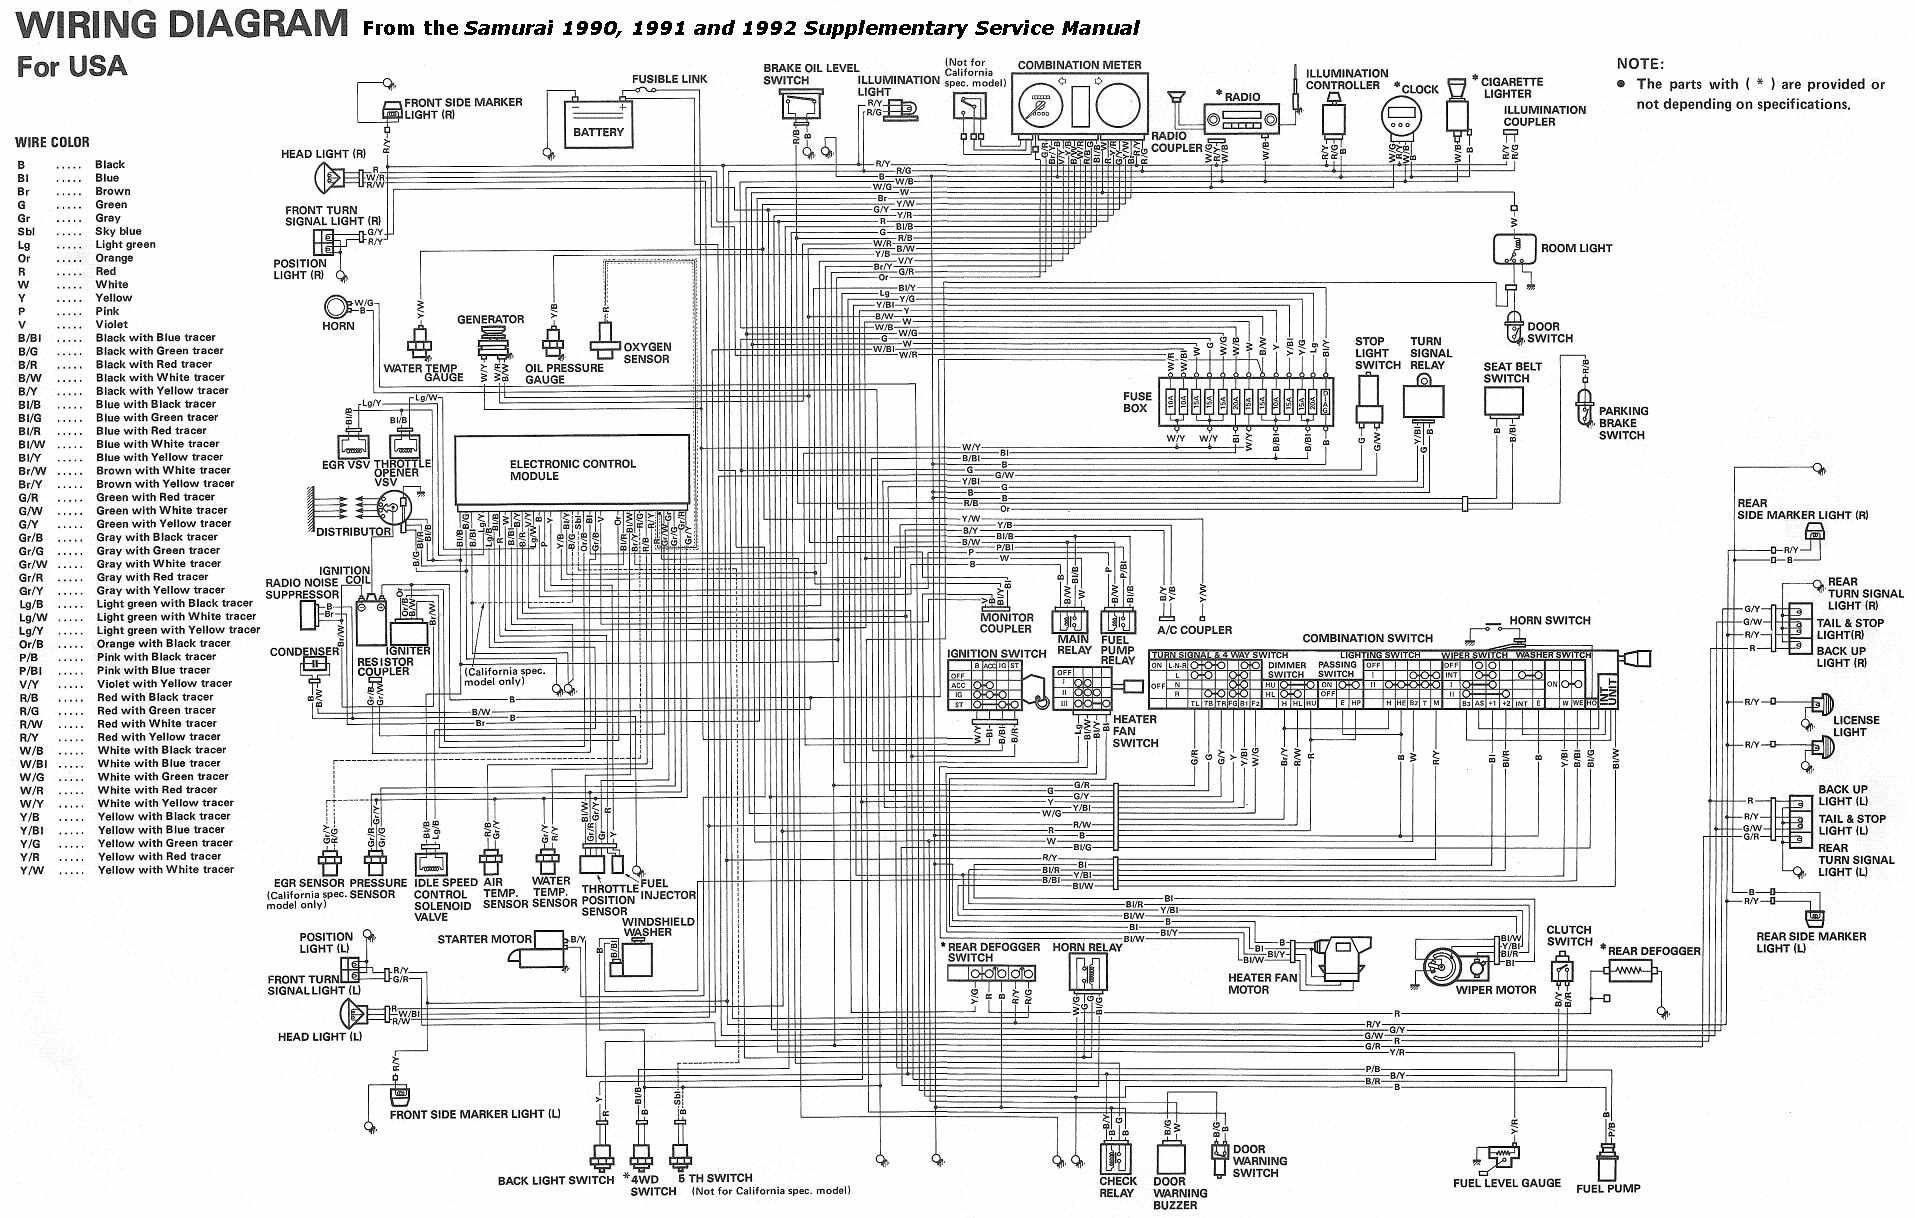 Unique Electrical Wiring Diagram Sample Free Diagram Wiringdiagram Diagramming Diagramm Vis Electrical Diagram Electrical Wiring Diagram Electrical Wiring